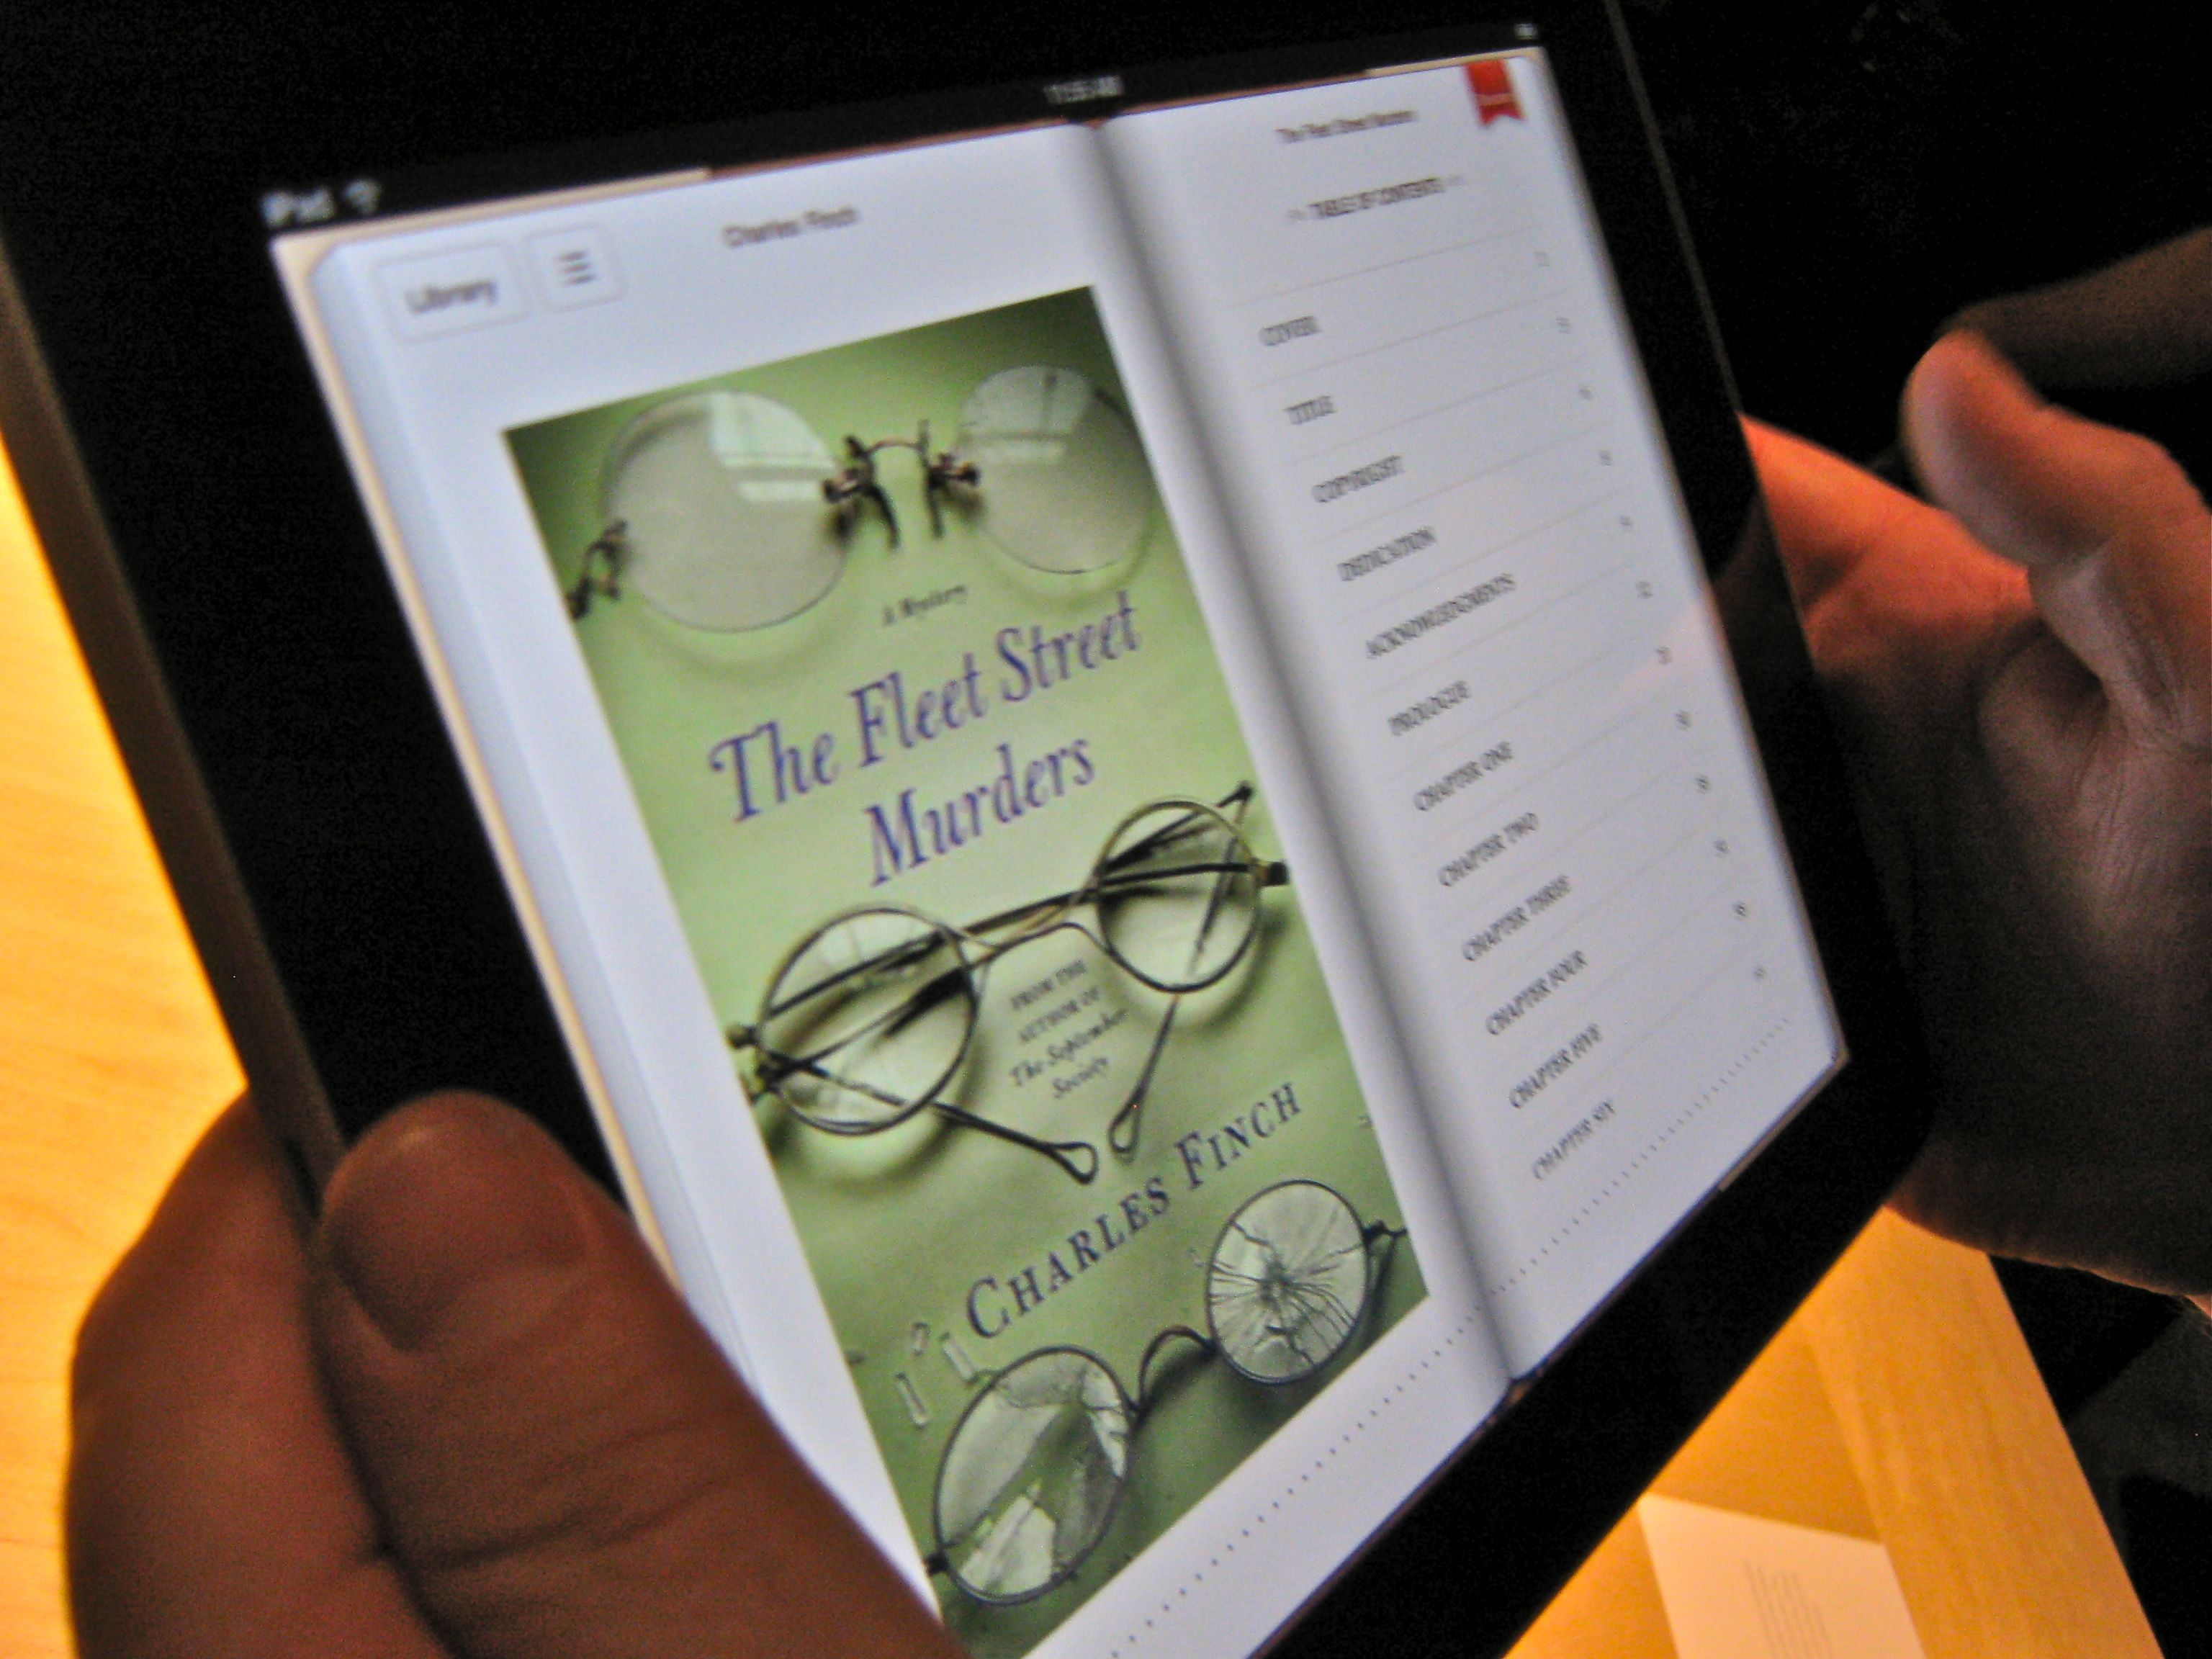 can i download ibooks on multiple devices